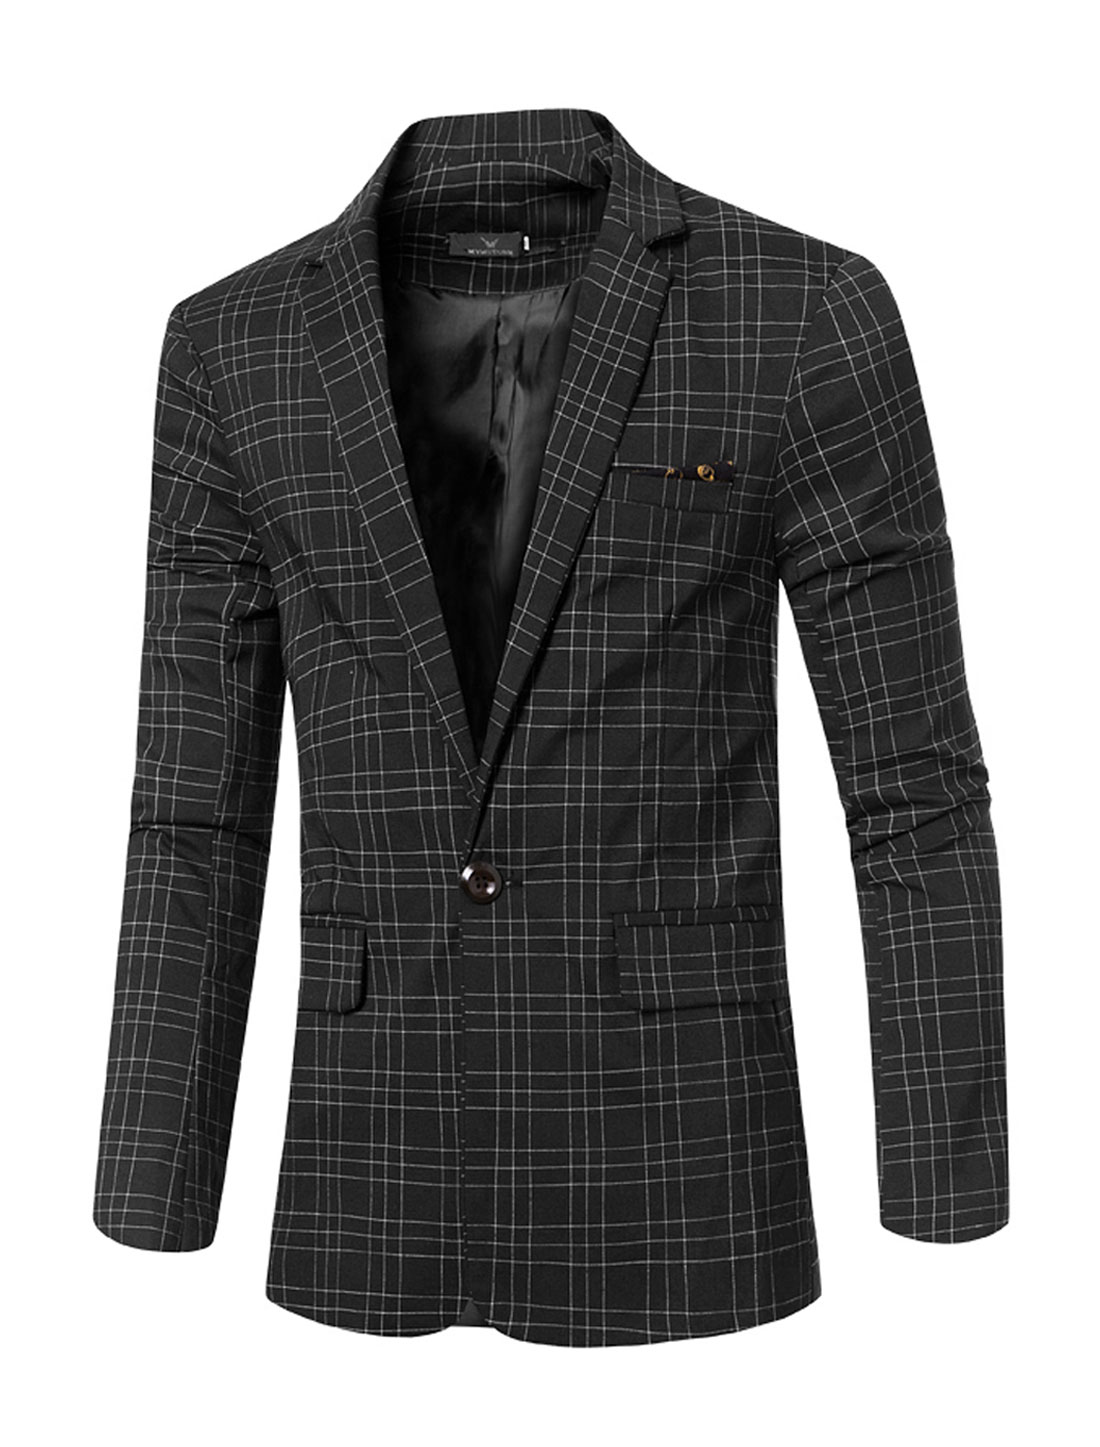 Men Notched Lapel Flap Pockets Checks One-Button Blazer Black M